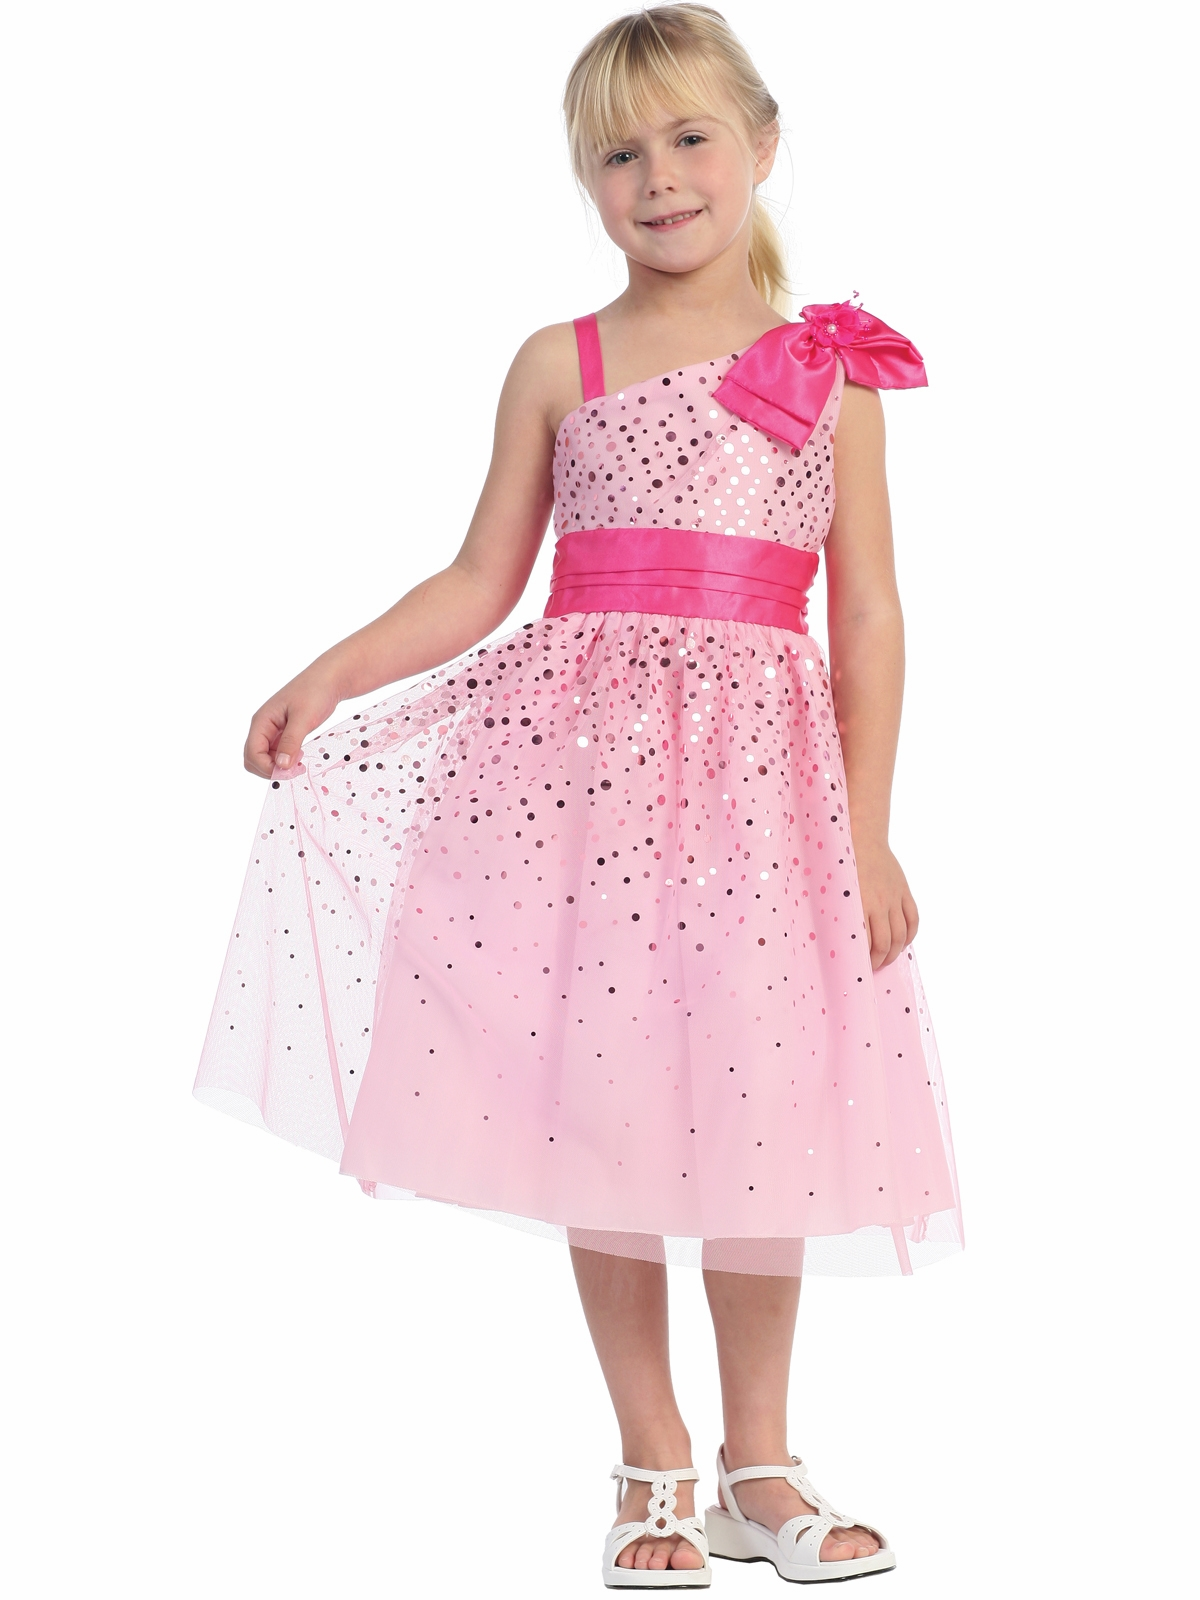 Sparkle Bow Flower Girl Easter Dress